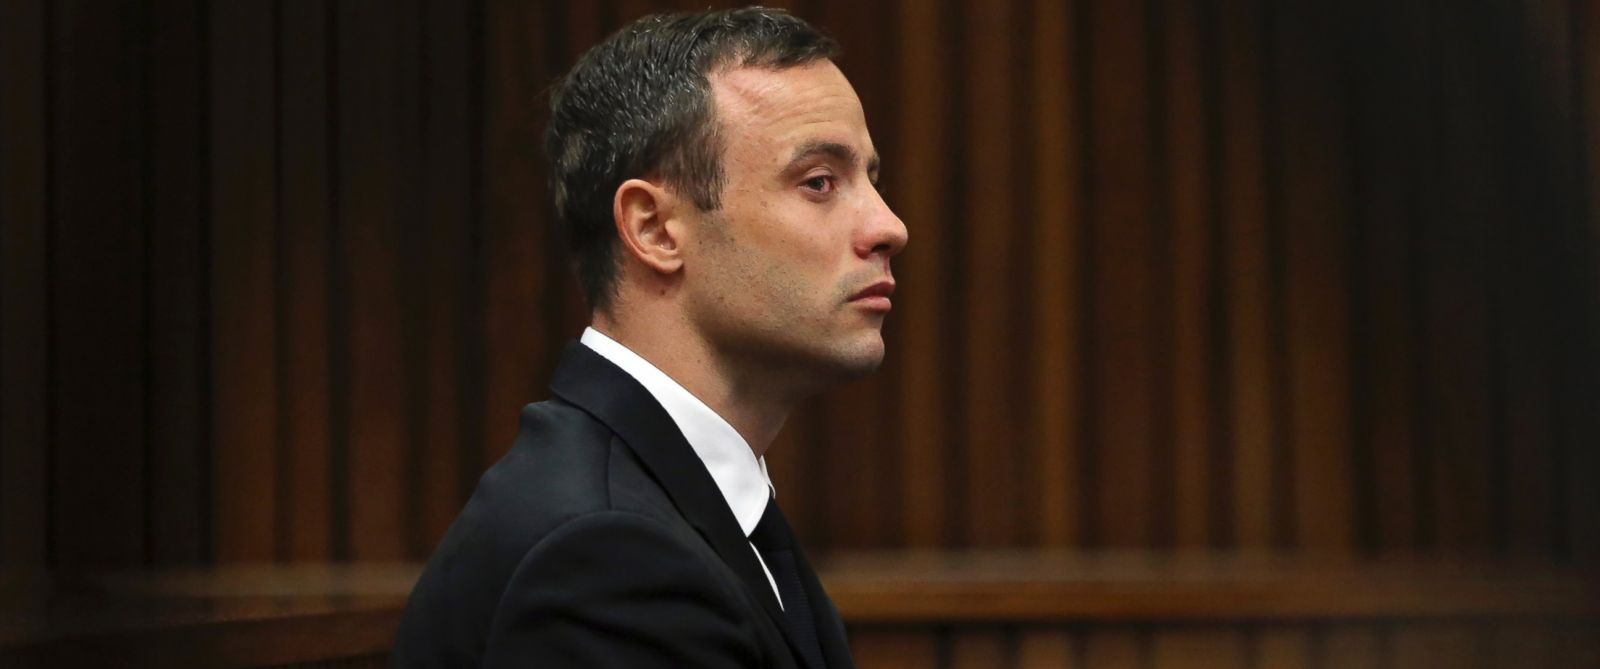 PHOTO: Oscar Pistorius sits in the dock at a court in Pretoria, South Africa, April 7, 2014.